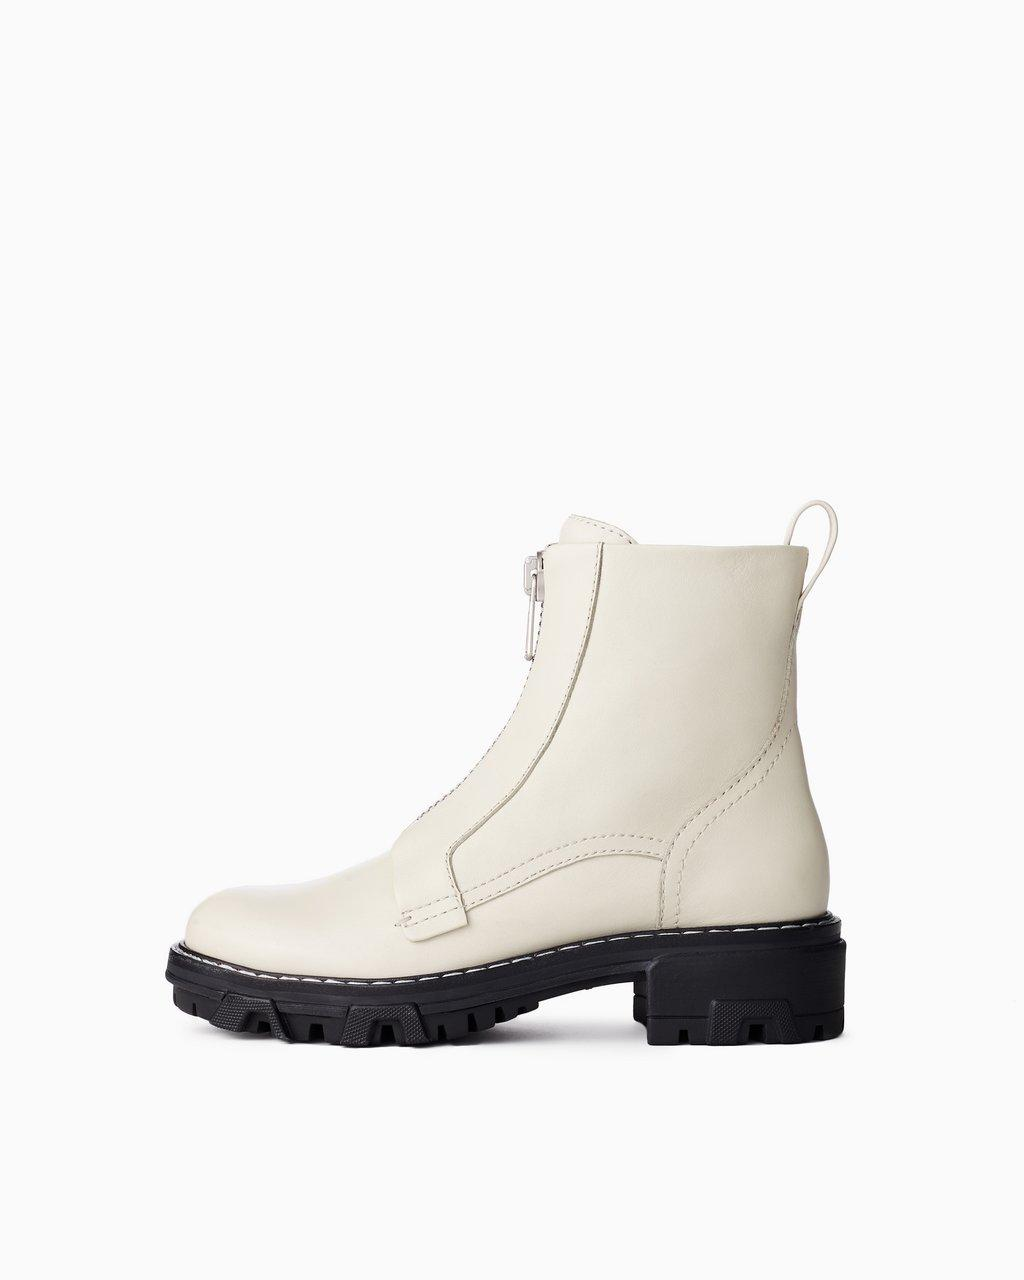 SHILOH ZIP Boot - Leather